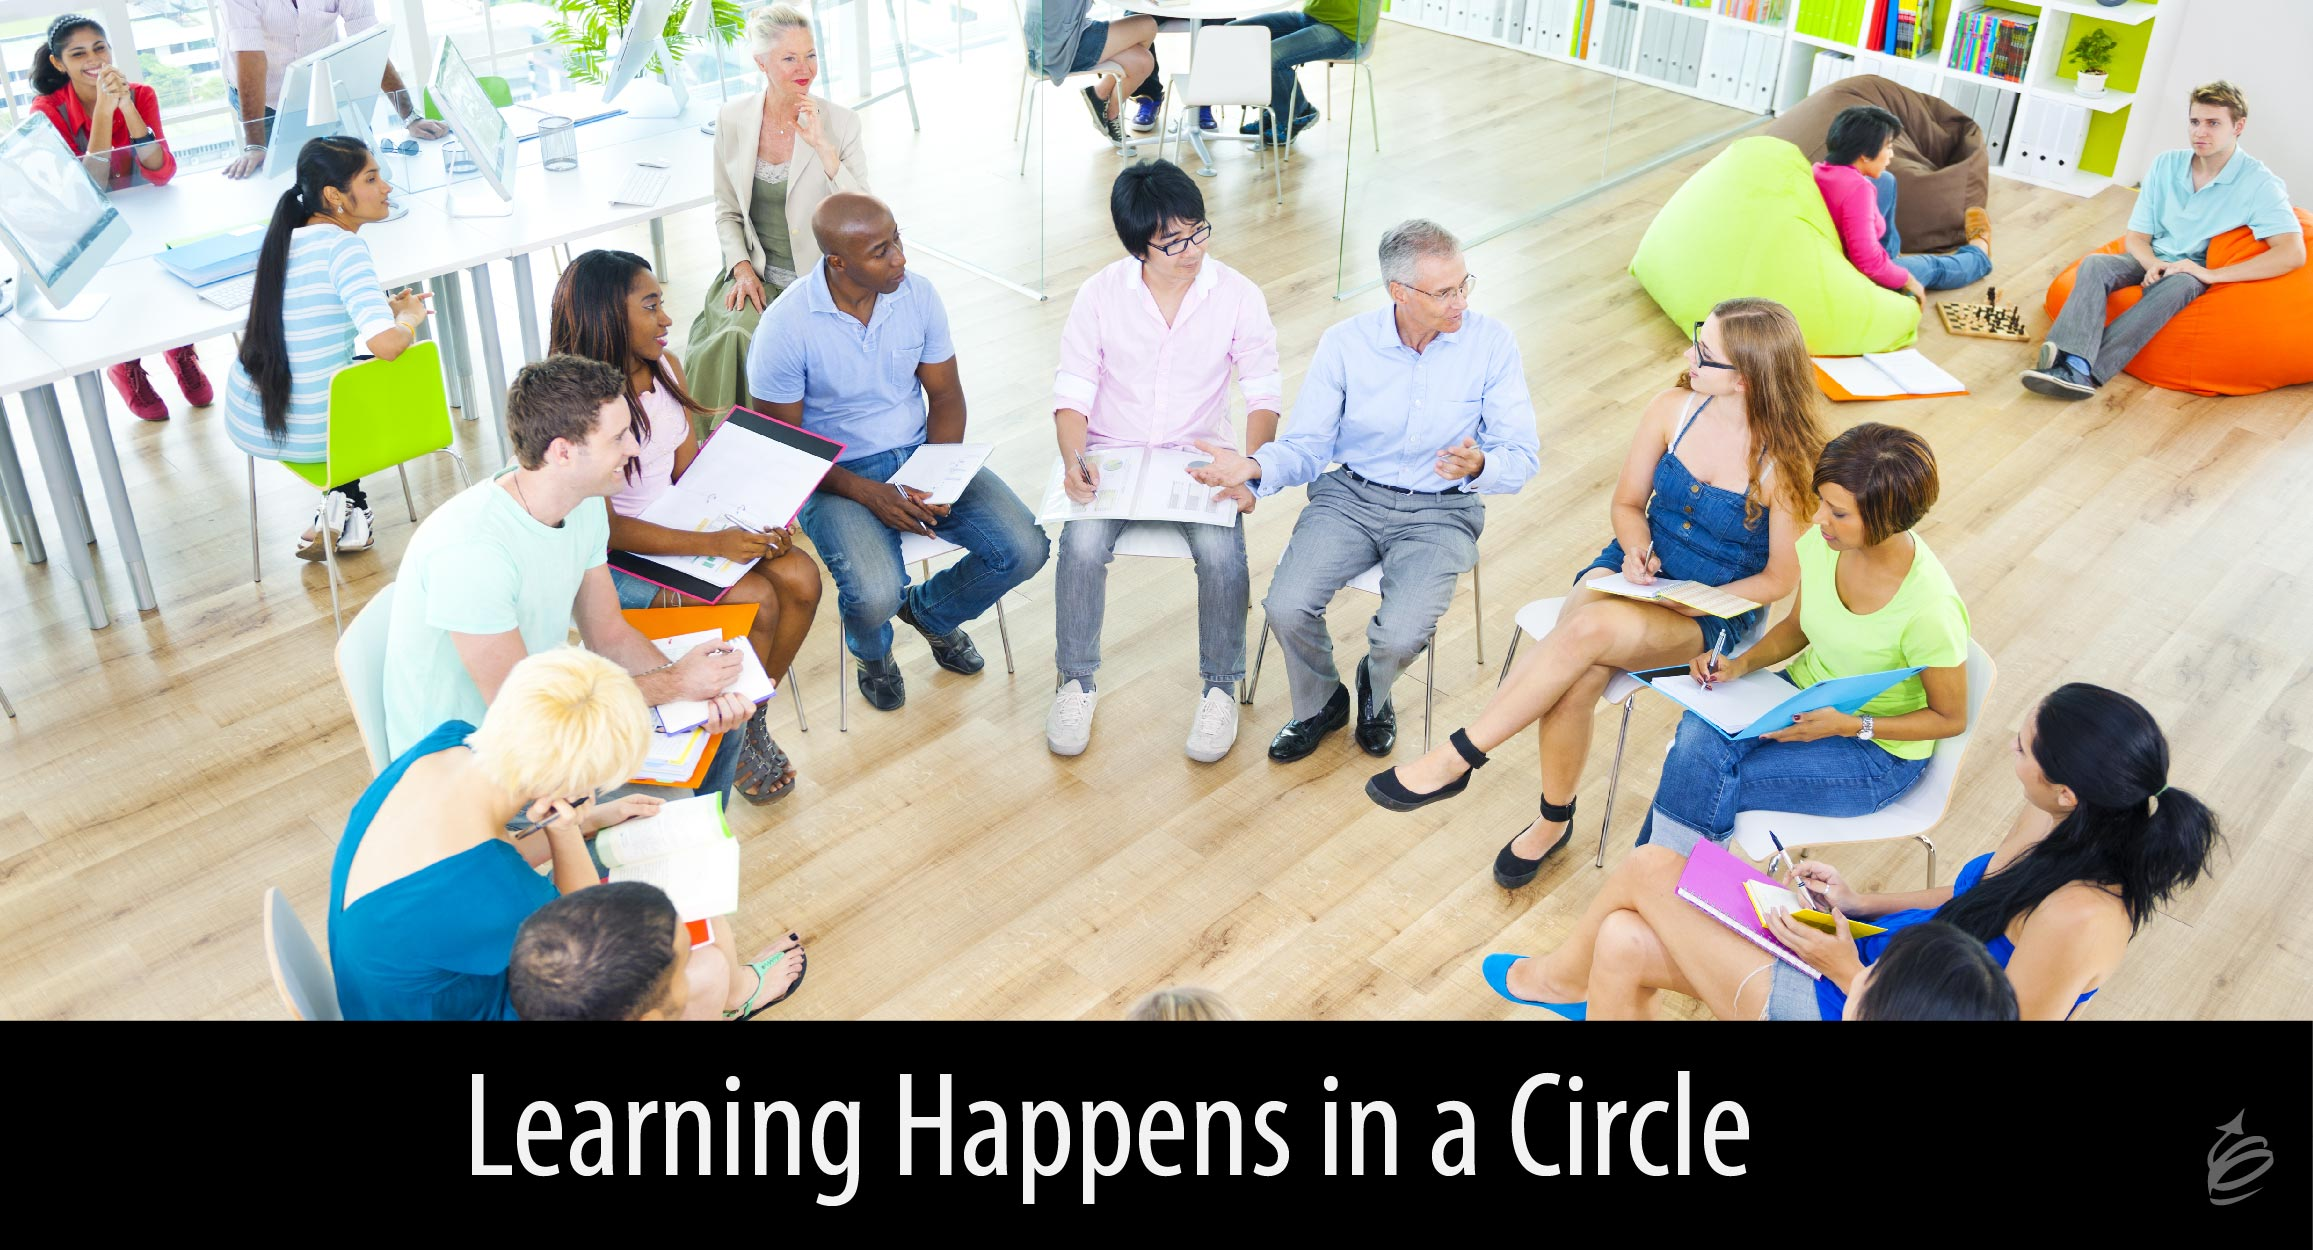 Learning in a circle